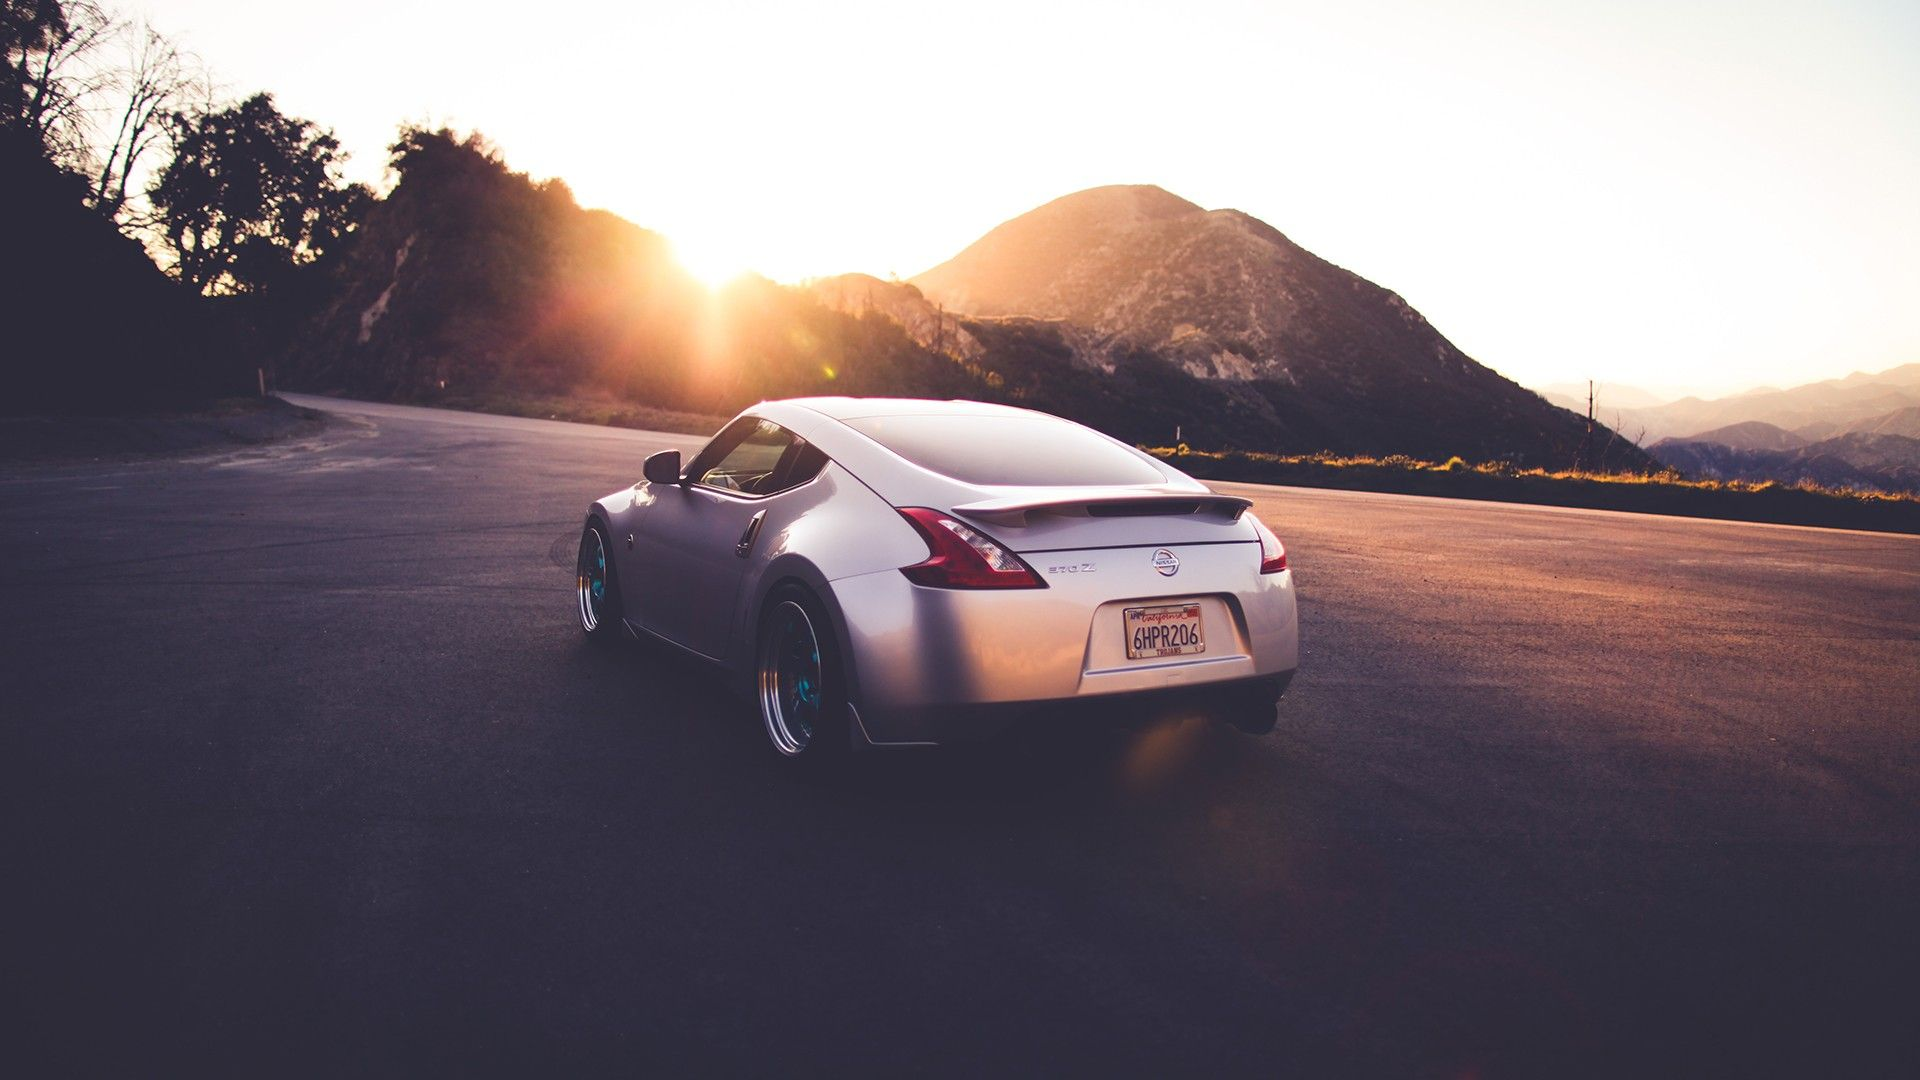 Exceptional Nissan 370z Nismo 4K Wallpaper  Https://free4kwallpapers.com/wallpaper/cars Motorcycles/cars/nissan 370z Nismo 4k/YY7O  | Desktop Wallpapers | Pinterest ...